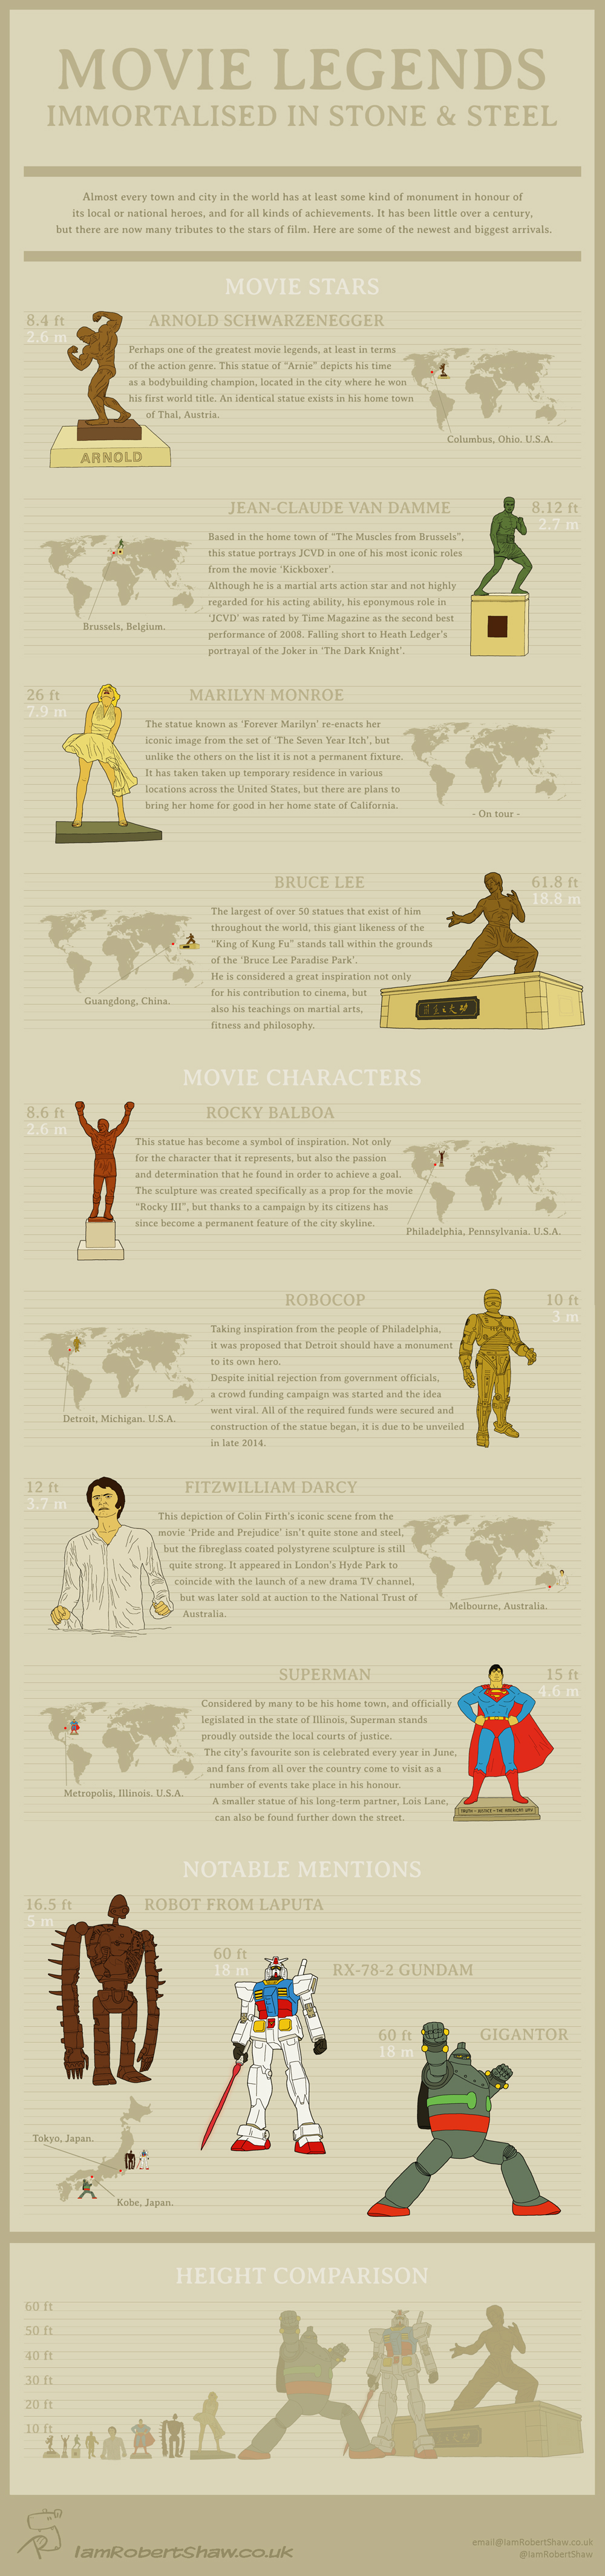 An infographic presenting various statues of popular celebrities and characters, each illustrated with their location on the world map.